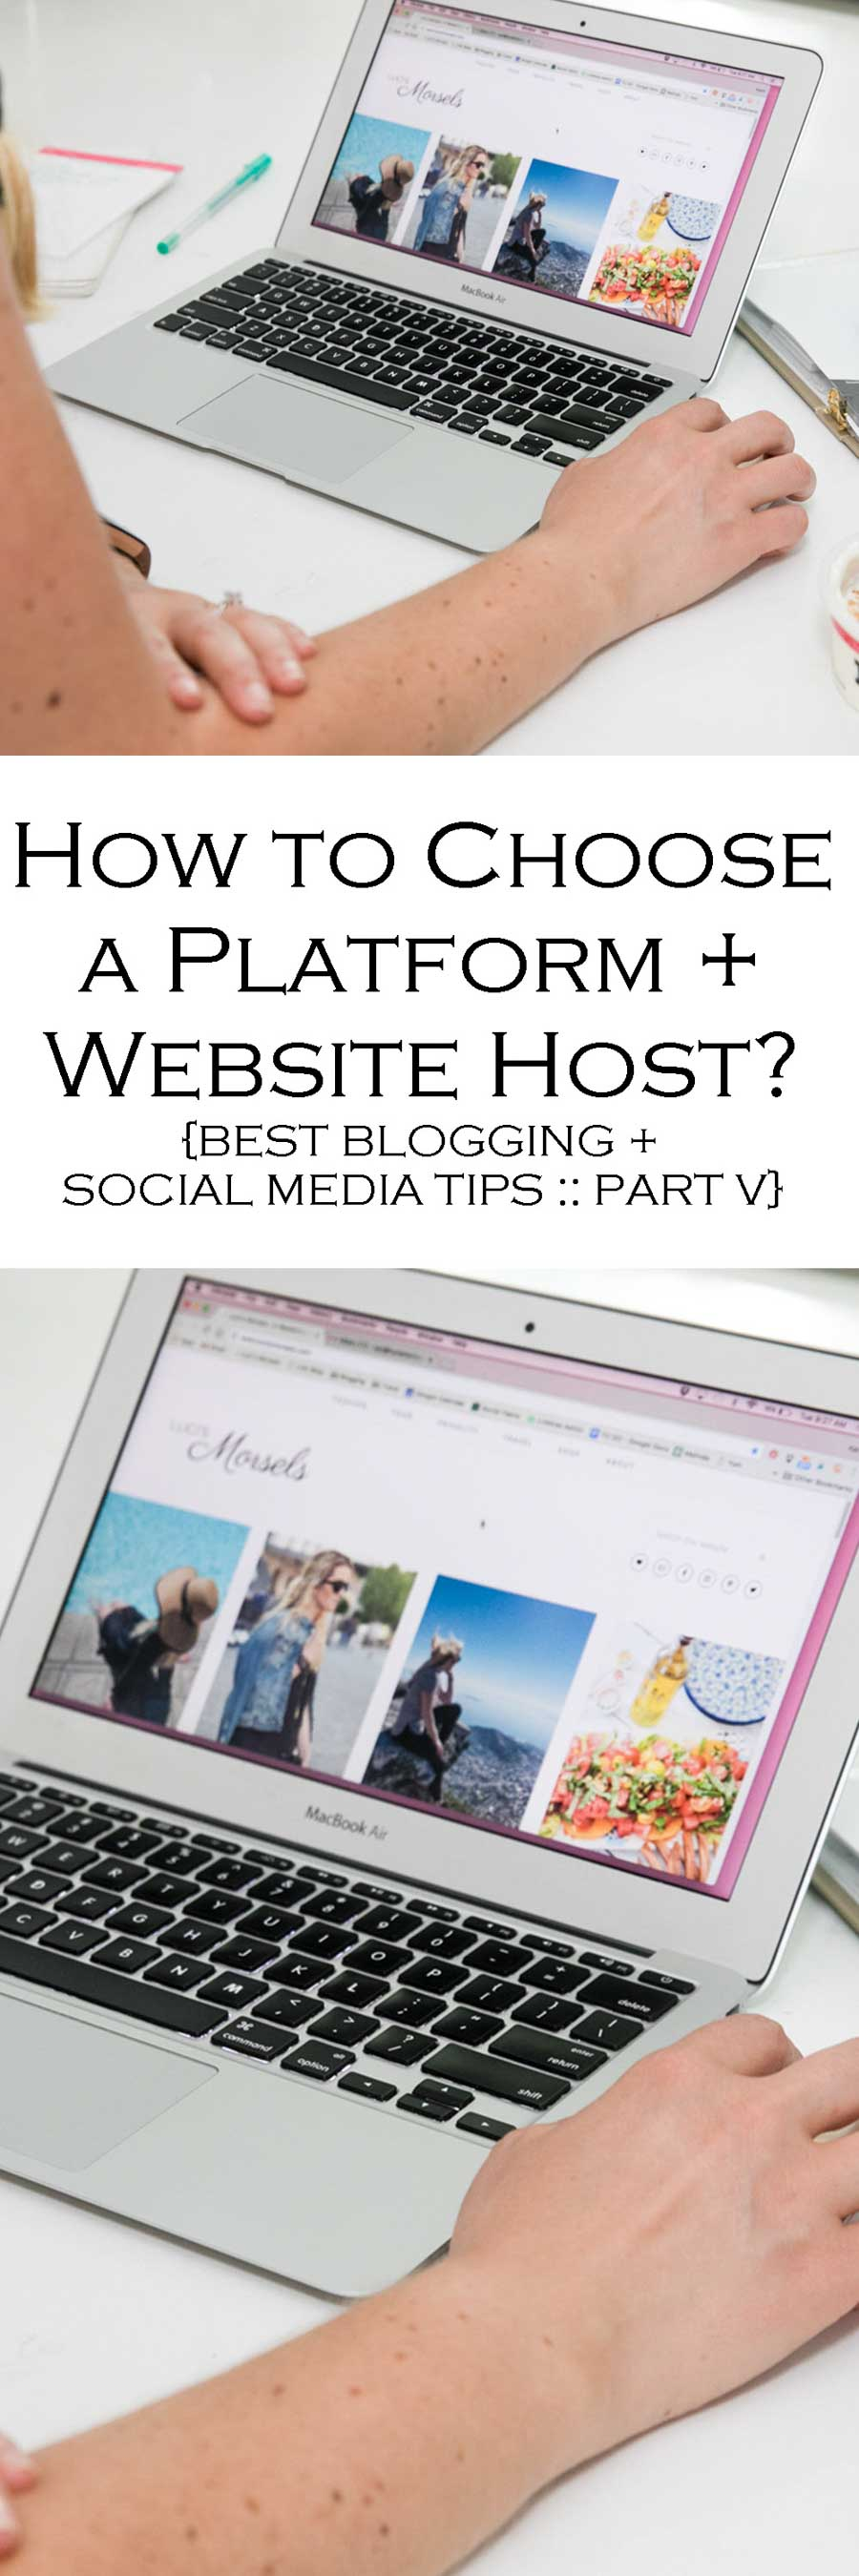 How to pick the best platform + host for your new blog. Best Blogging + Social Media Tips for new Bloggers and Small Businesses.